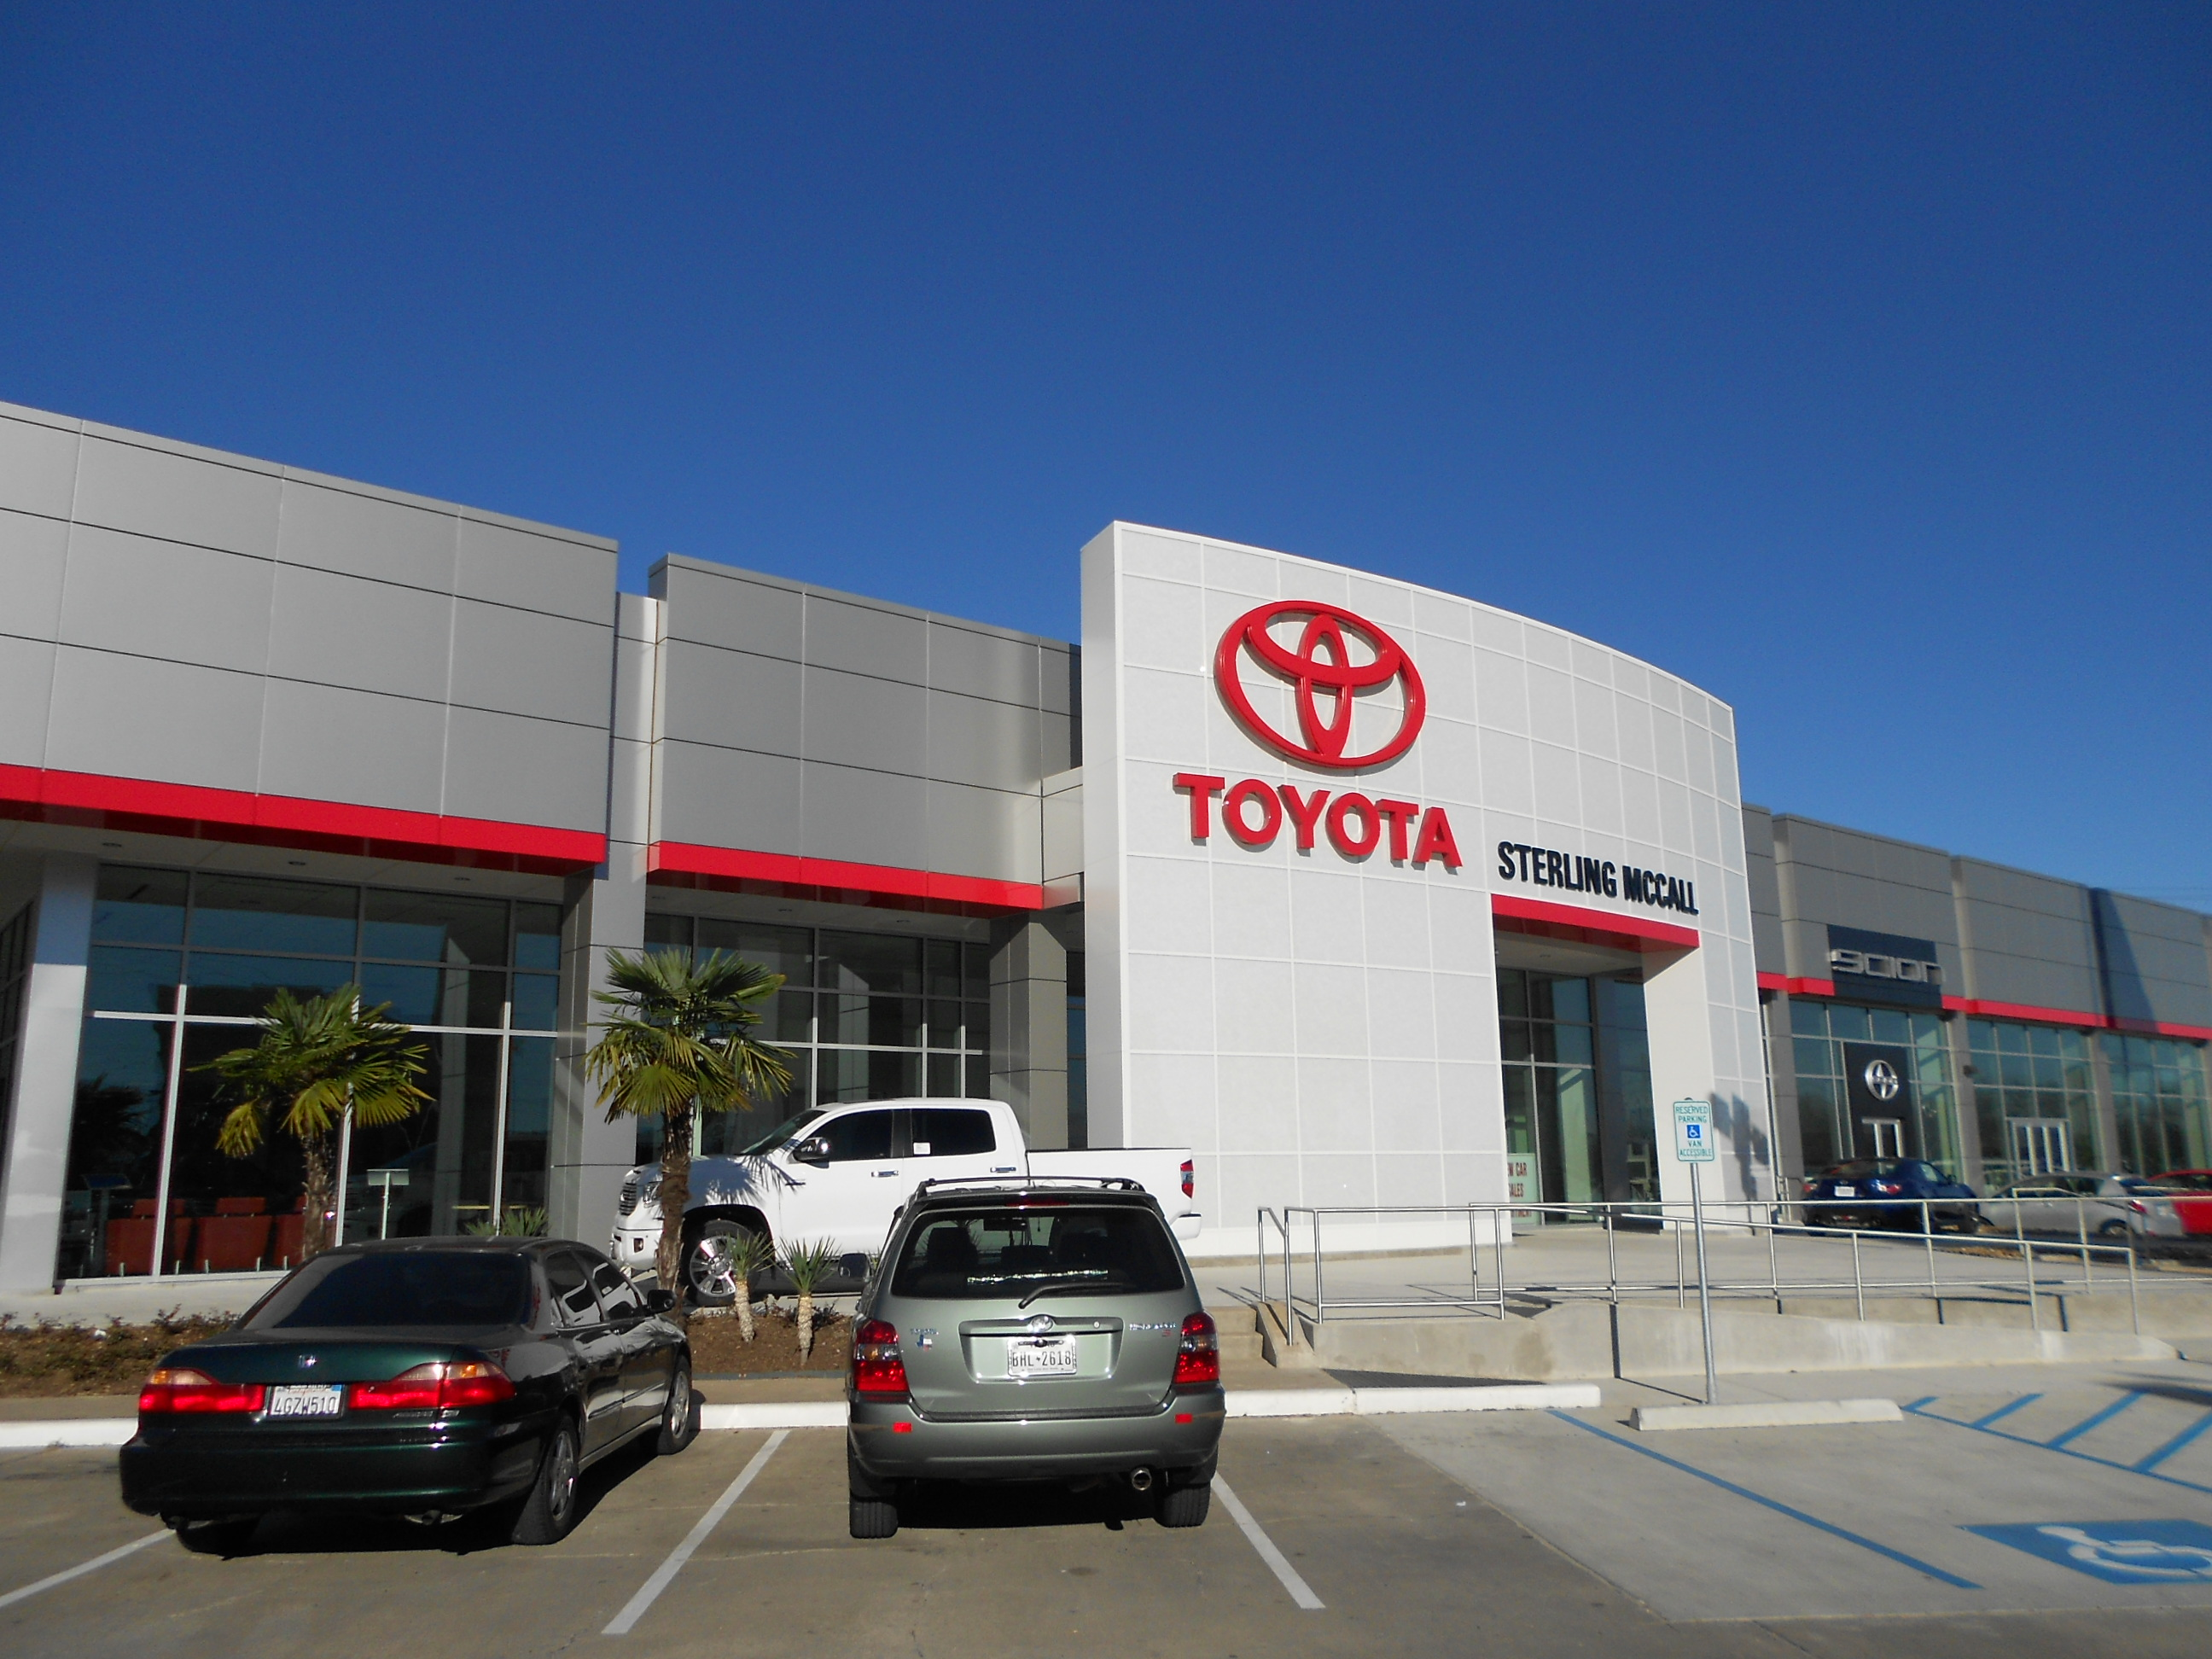 Toyota Dealers Near Me >> Sterling McCall Toyota Coupons near me in Houston | 8coupons